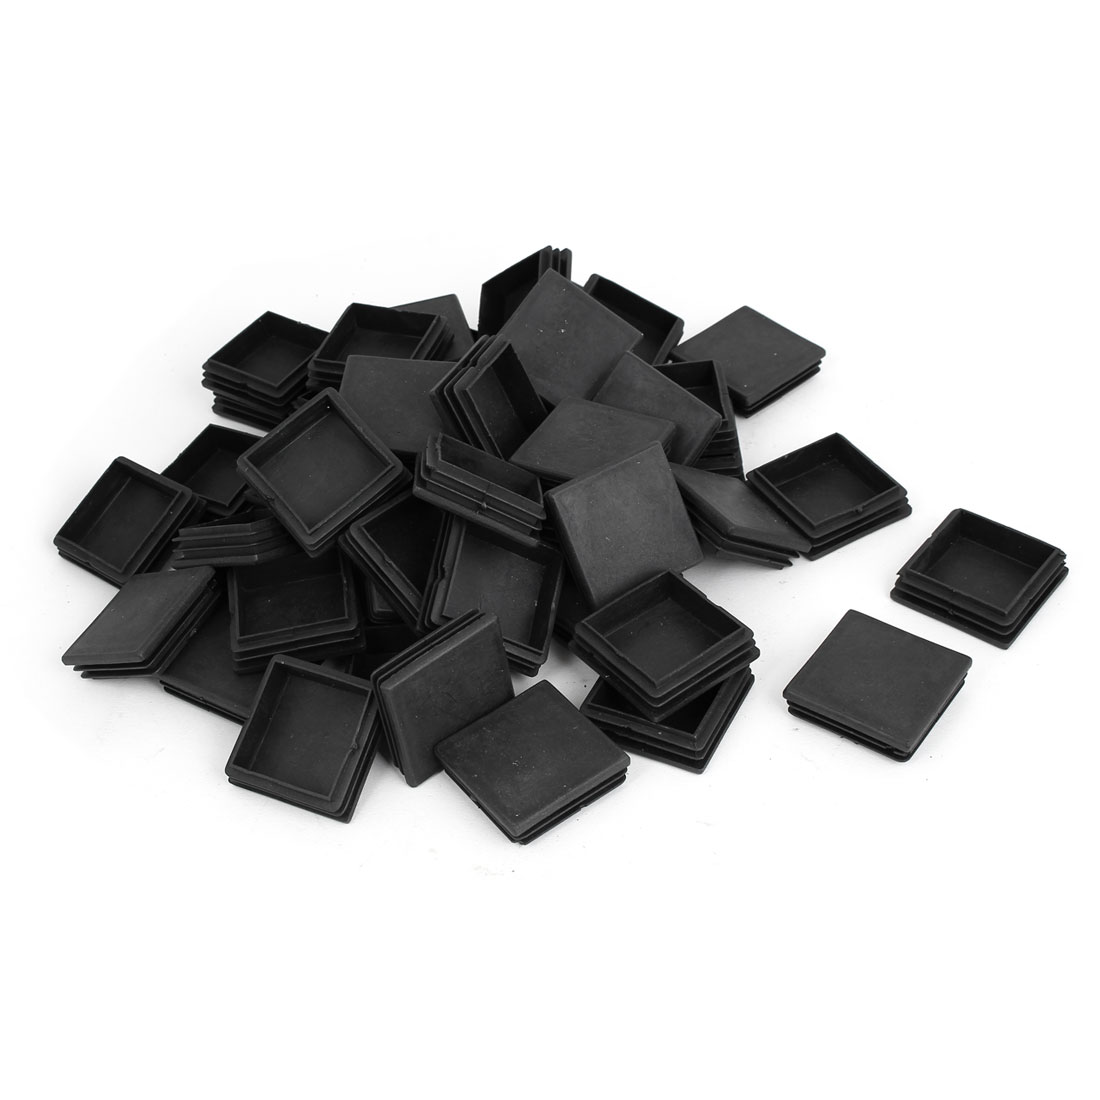 Office Plastic Square Furniture Chair Legs Tube Insert Black 50mm x 50mm 50 Pcs